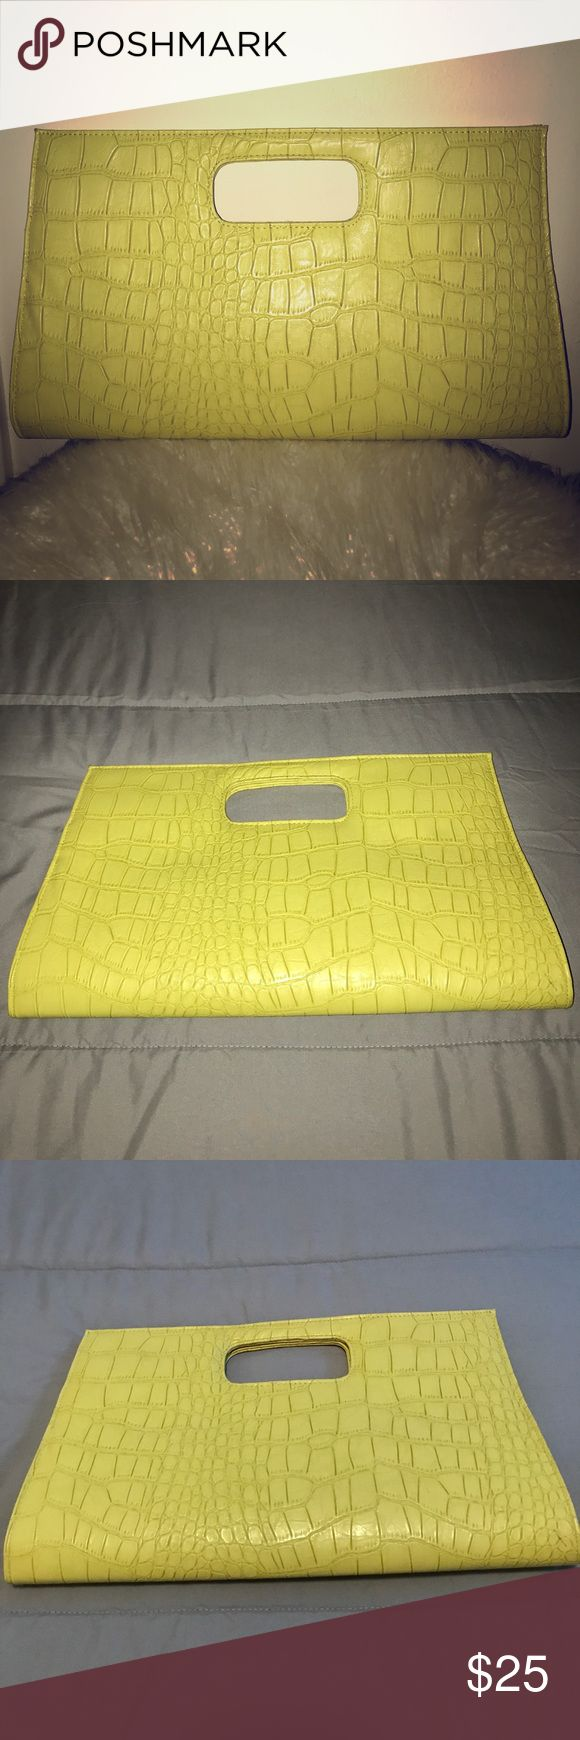 Yellow clutch All yellow oversized clutch purse! No chain, no straps, clutch purse only! Beautiful bag with turquoise interior! Bags Clutches & Wristlets